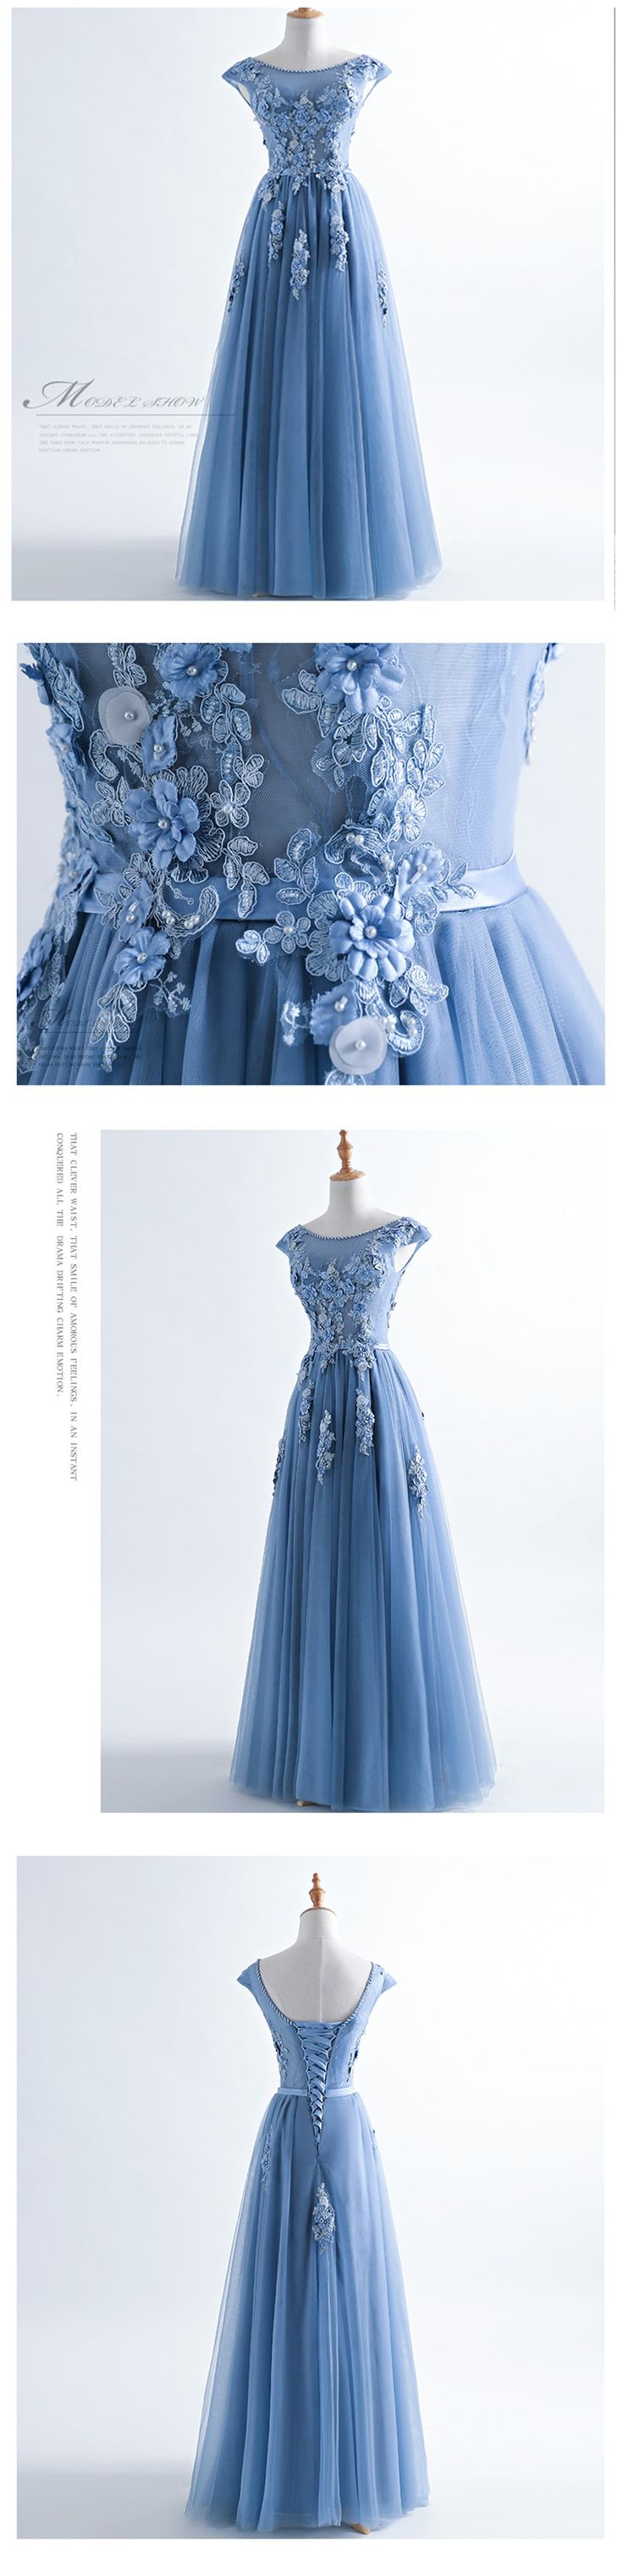 Scoop Neckline Dusty Blue Lace Evening Prom Dresses, 2018 Lace Party Prom Dresses, Cheap Custom Long Evening Party Dresses, 18402